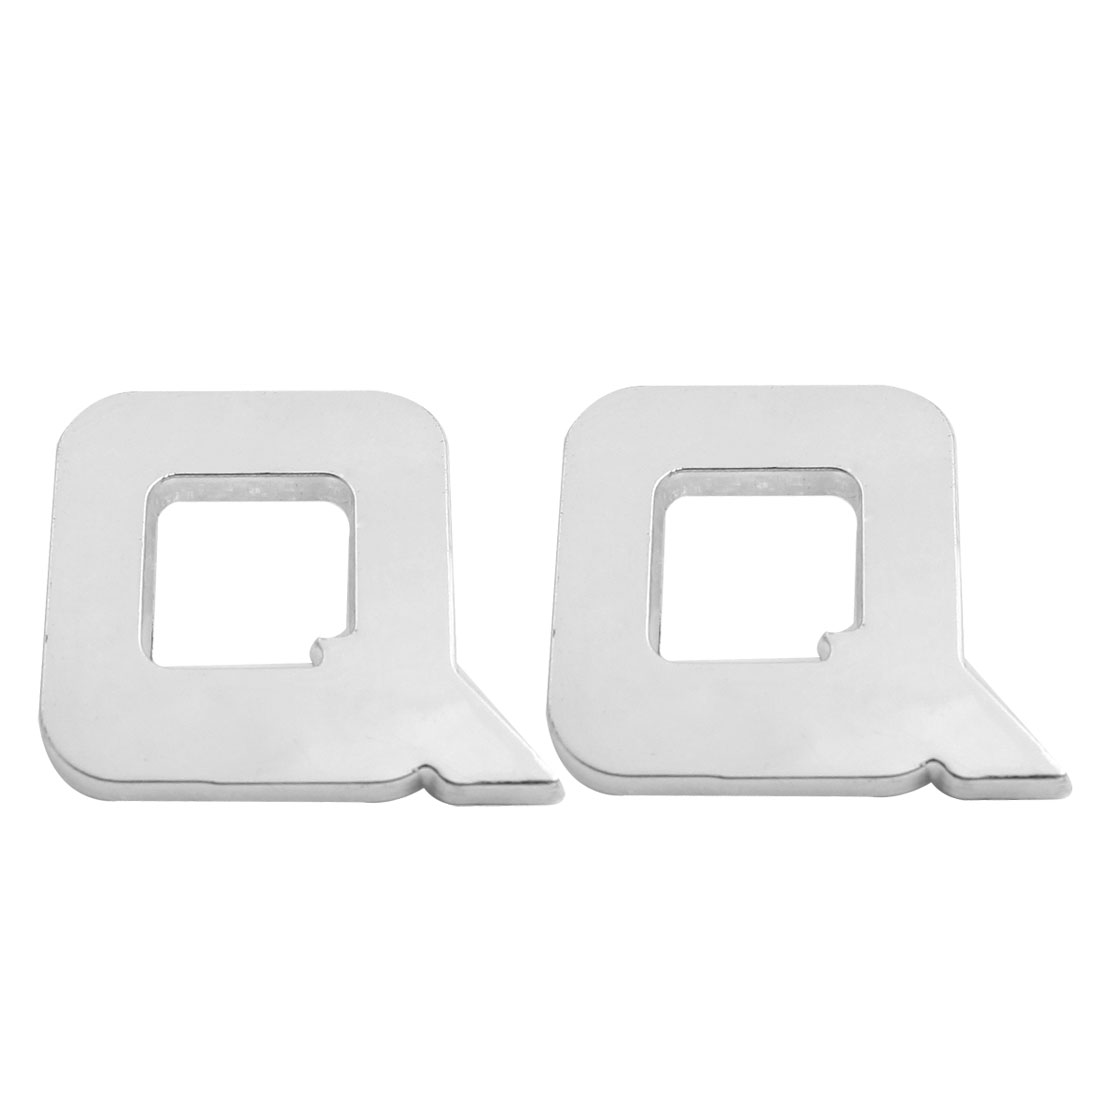 Motorcycle Car Auto Q Letter 3D Emblem Badge Sticker Decal Silver Tone 2 Pcs